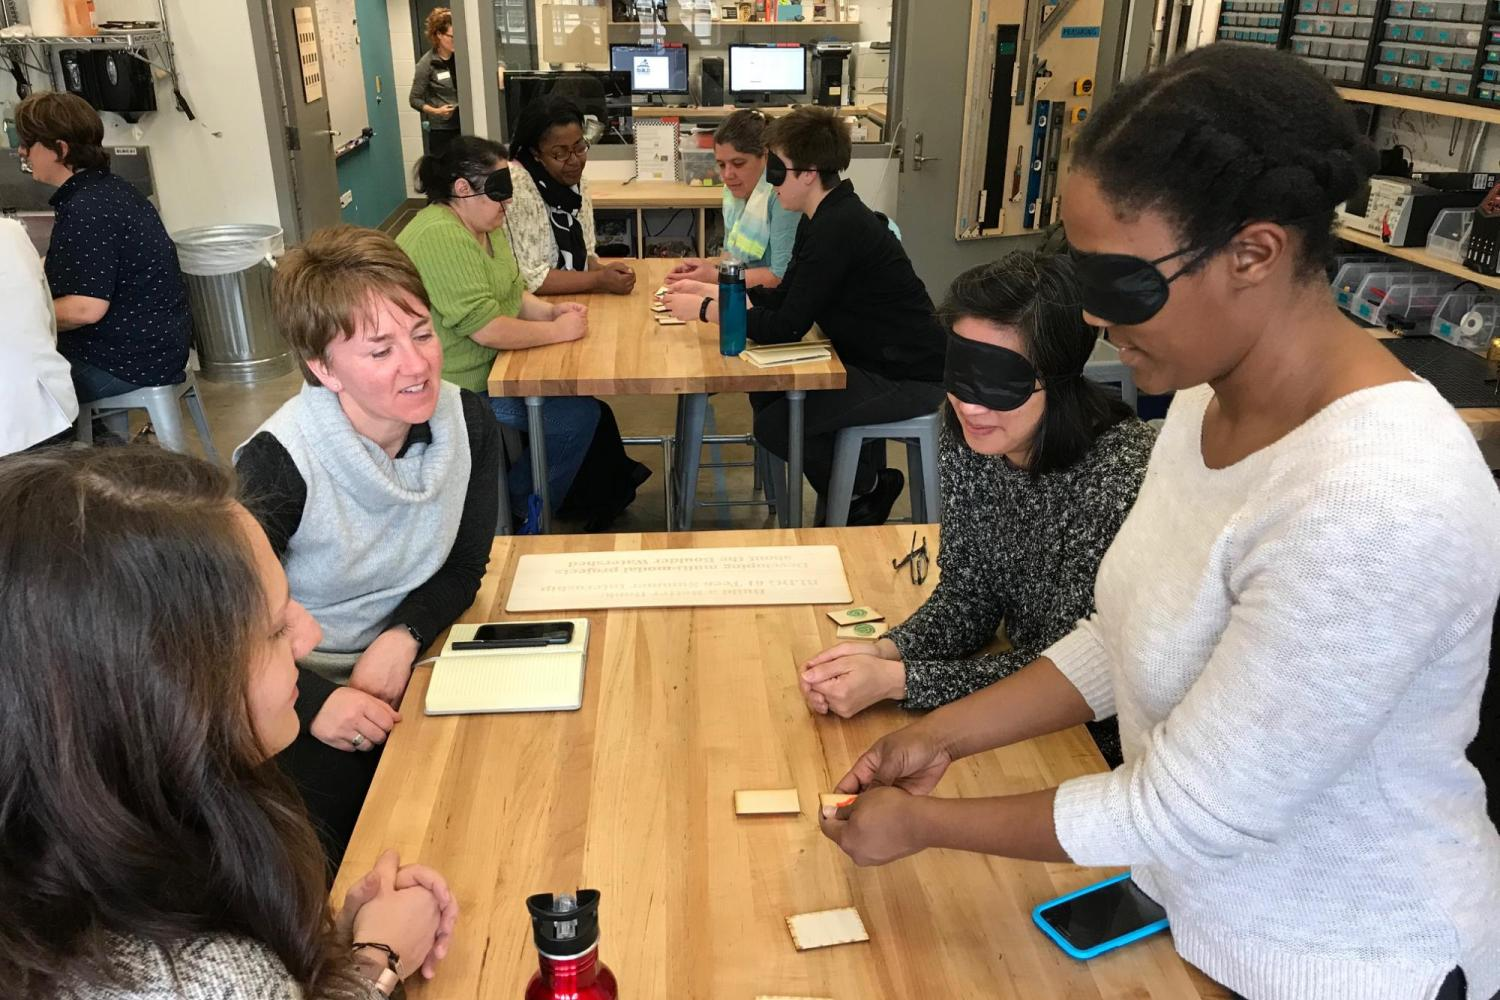 Librarians with blindfolds test a tactile Memory game.